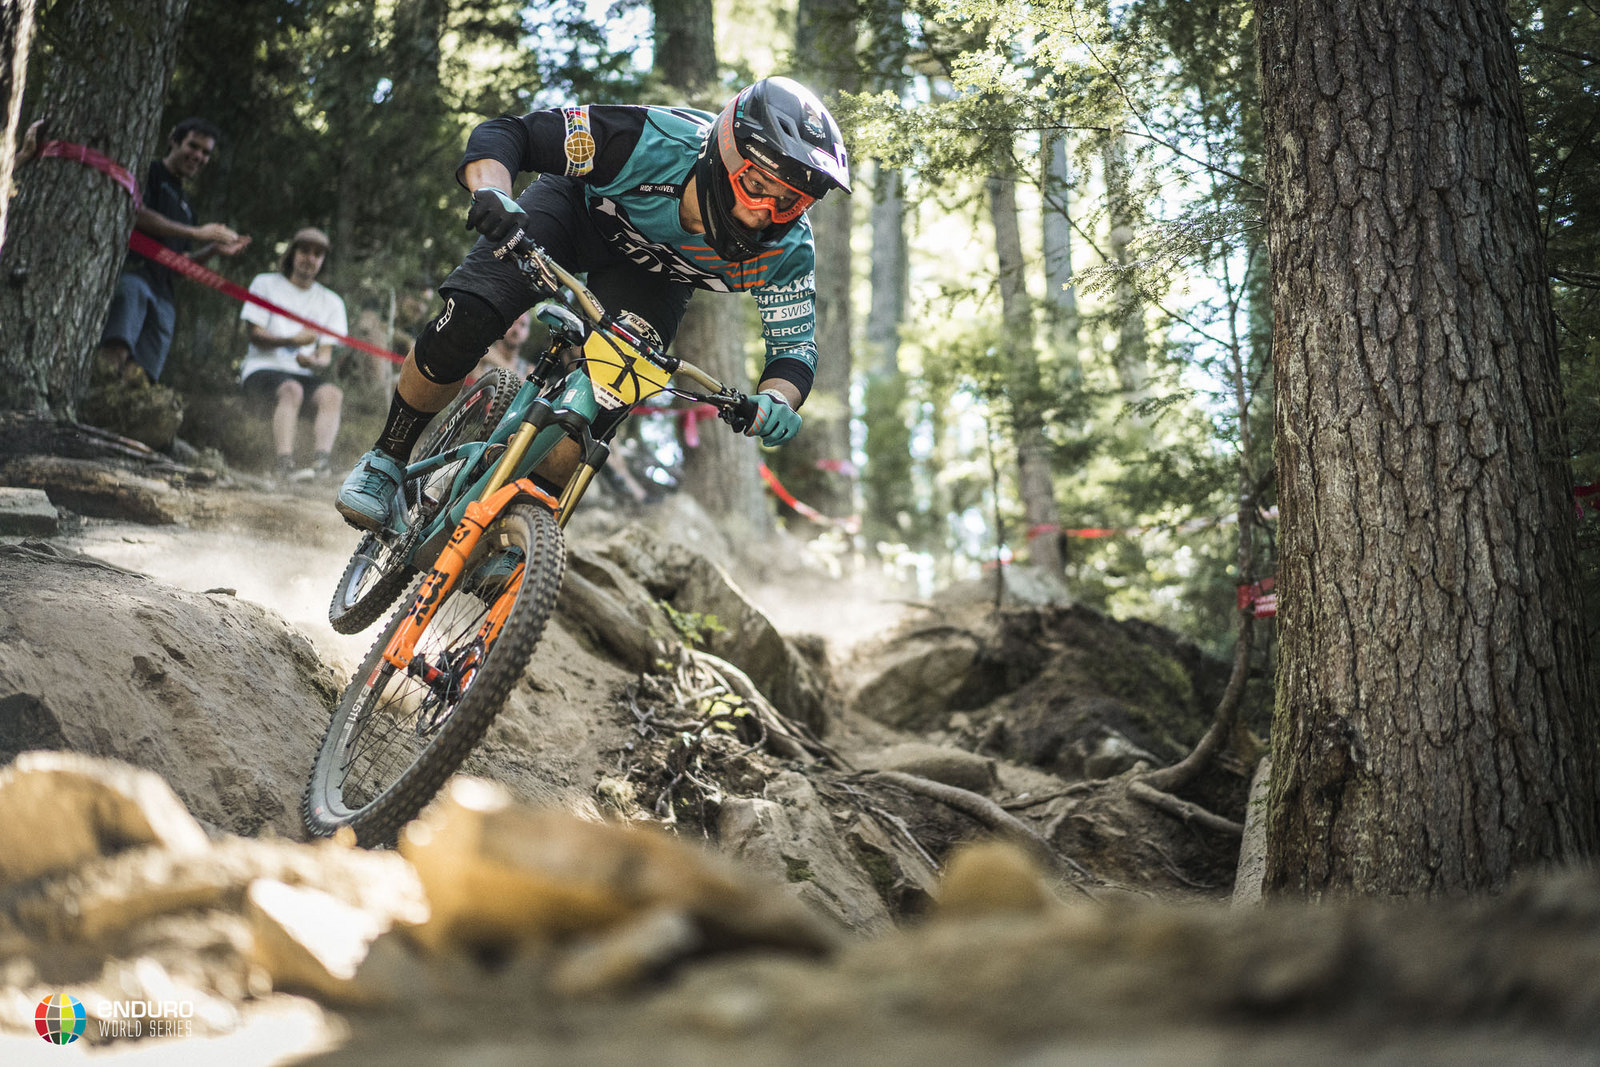 You wouldn't know it, but Rude has a puncture in this photo. He continued to ride aggressively all the way to the finish and then fixed it. Photo courtesy Enduro World Series